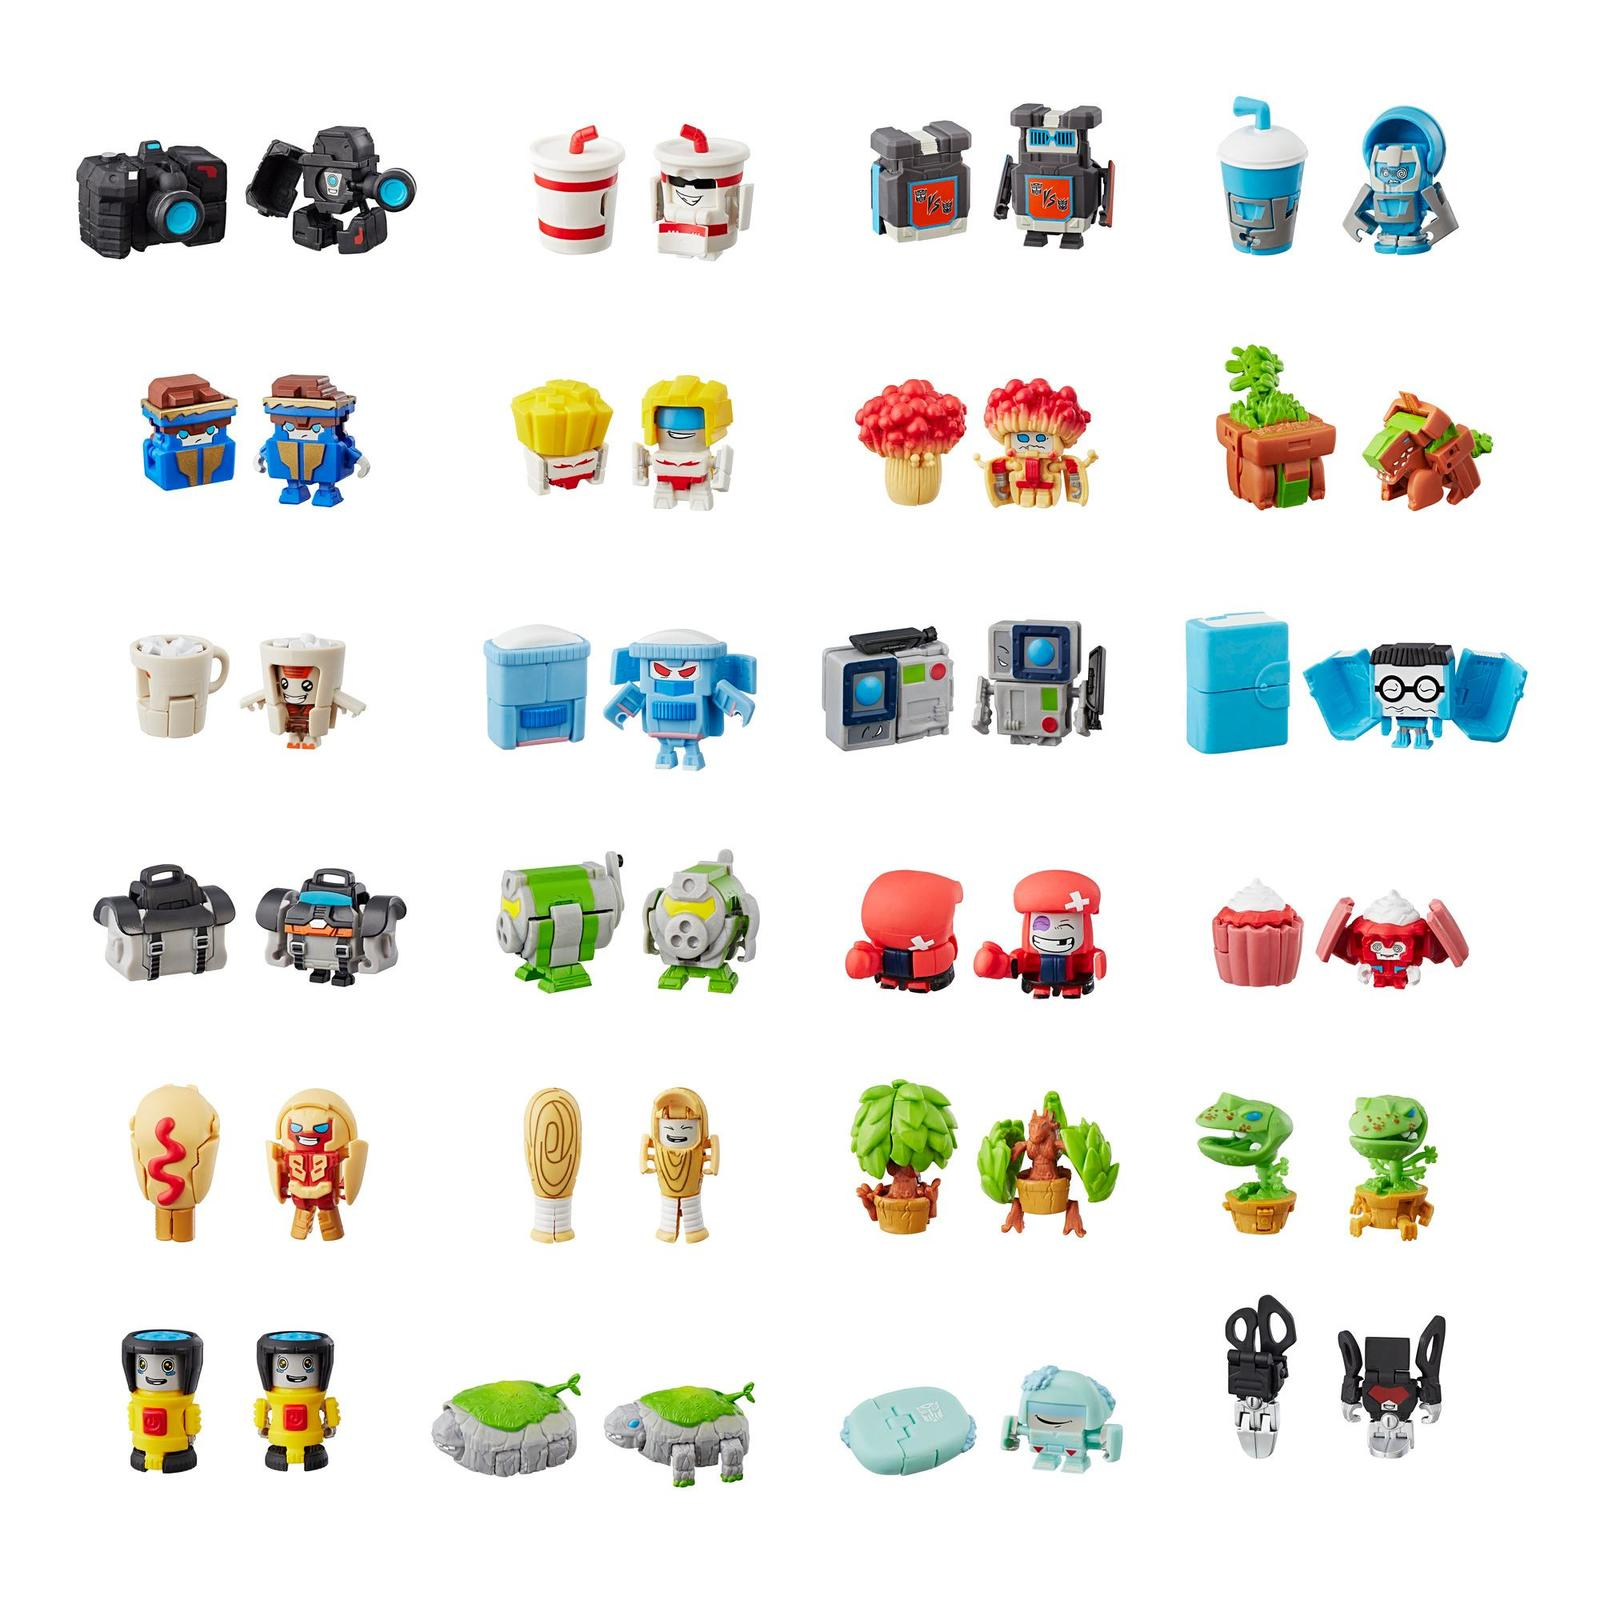 Transformers: BotBots - Mystery Figure (Blind Bag) image